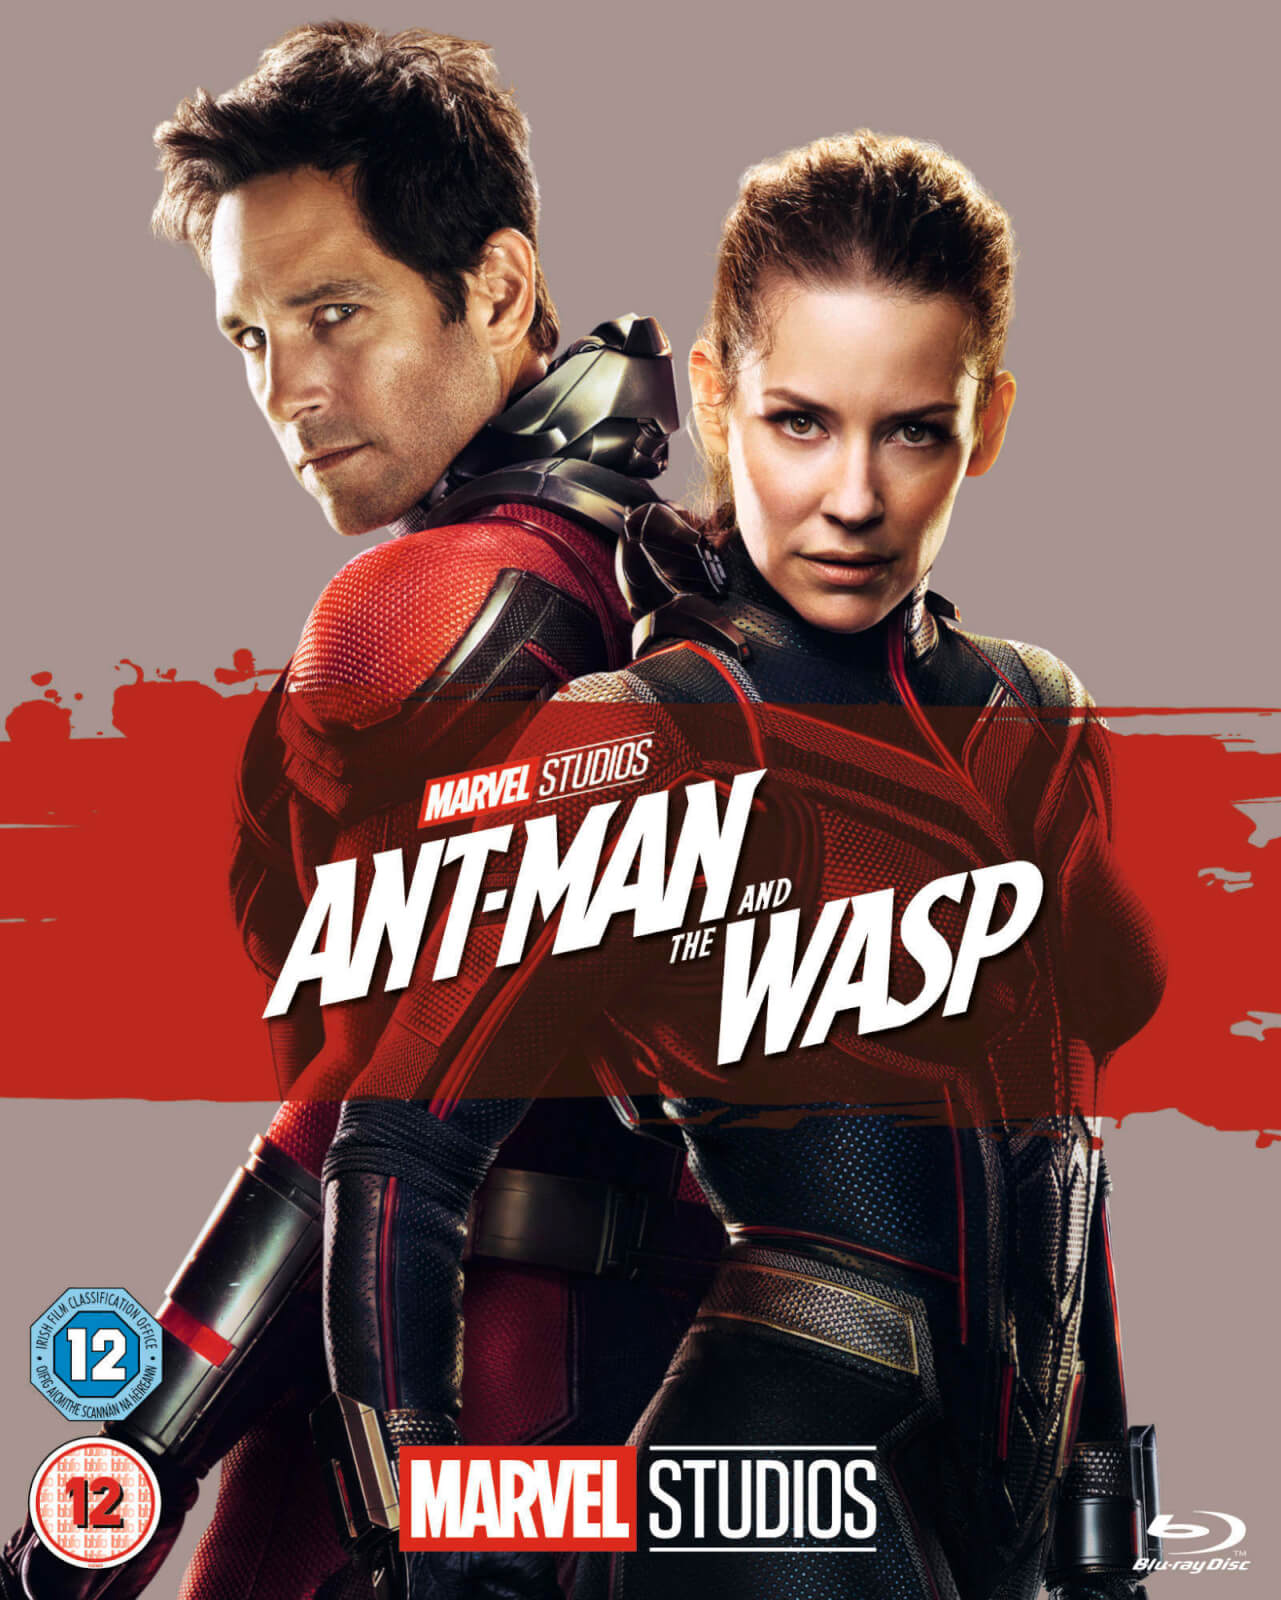 Ant-Man and the Wasp Blu-ray |...